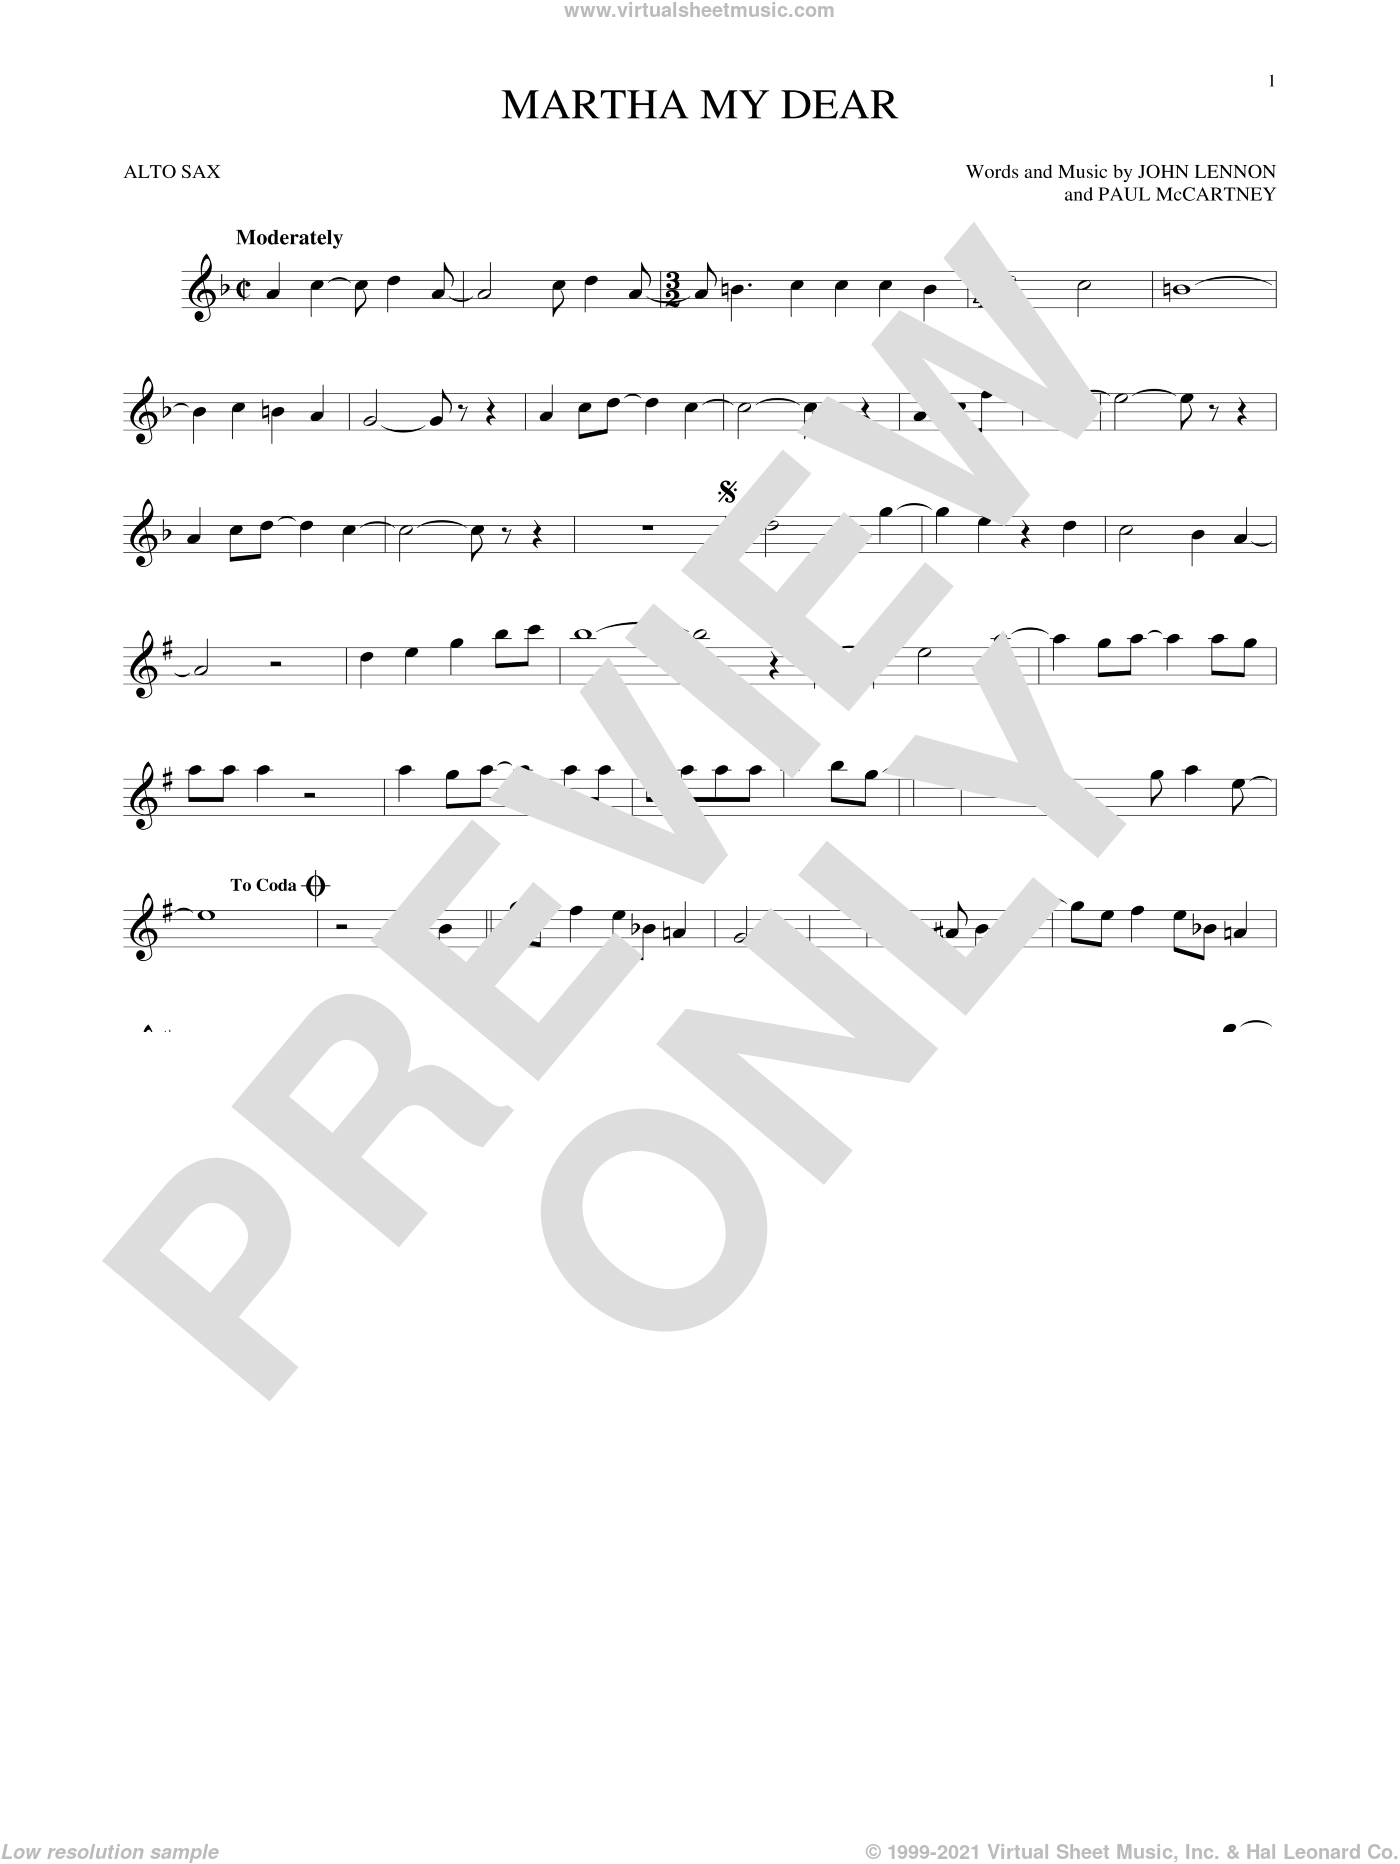 Martha My Dear sheet music for alto saxophone solo by The Beatles, John Lennon and Paul McCartney, intermediate skill level